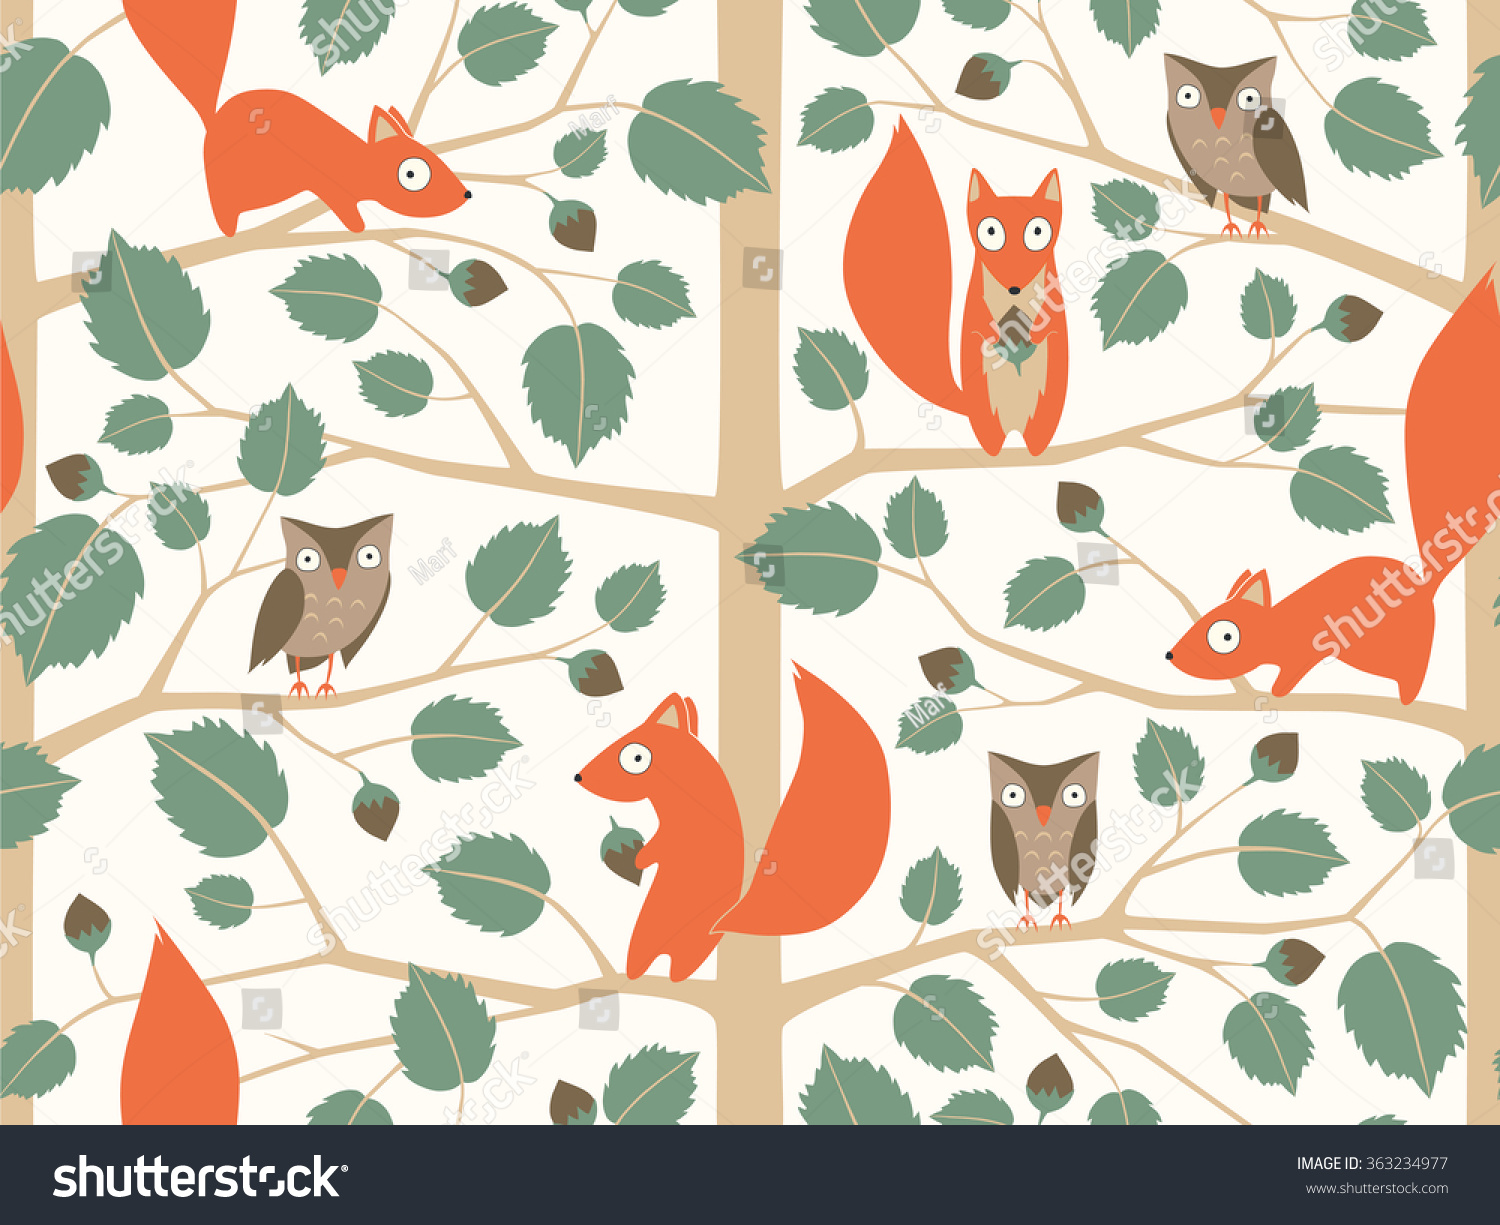 Cute woodland seamless pattern with squirrels and owls in childish cartoon style. Vector illustration can be used for wallpaper, pattern fills, ...